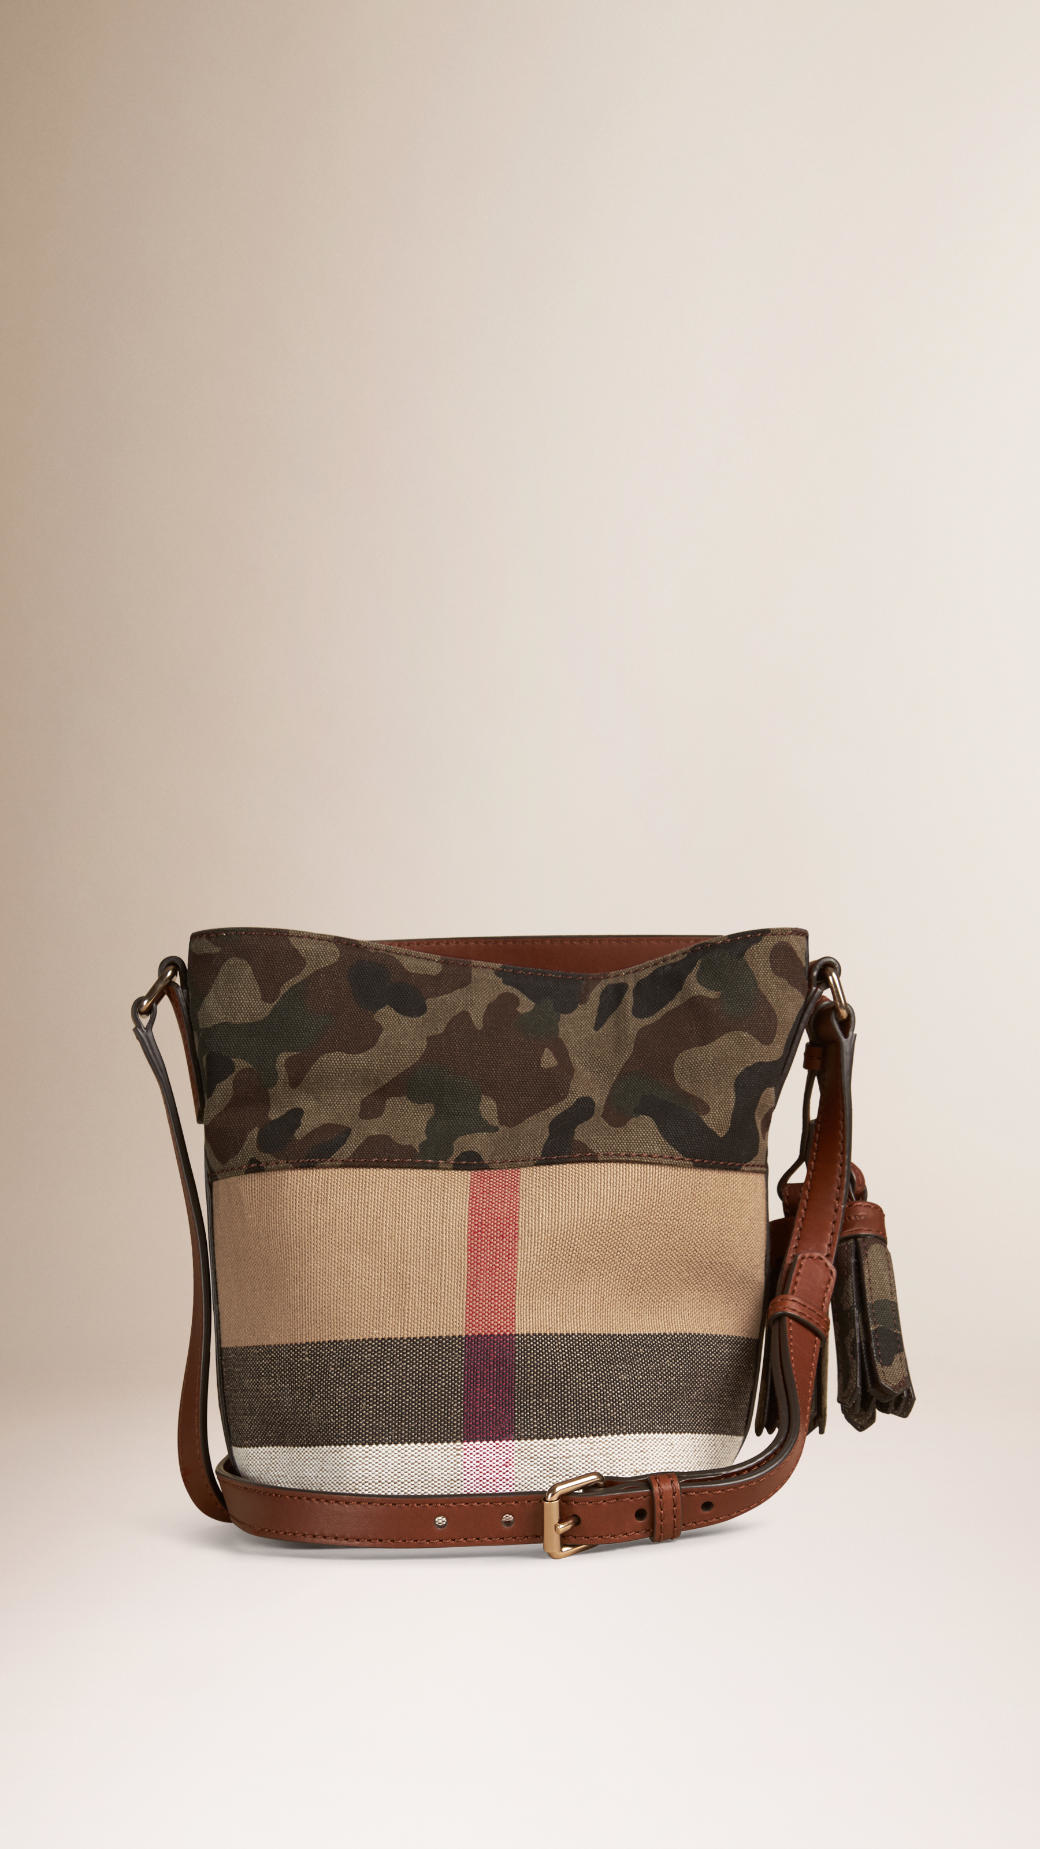 5615fffc26ea Lyst - Burberry The Small Ashby In Canvas Check And Camouflage in Brown